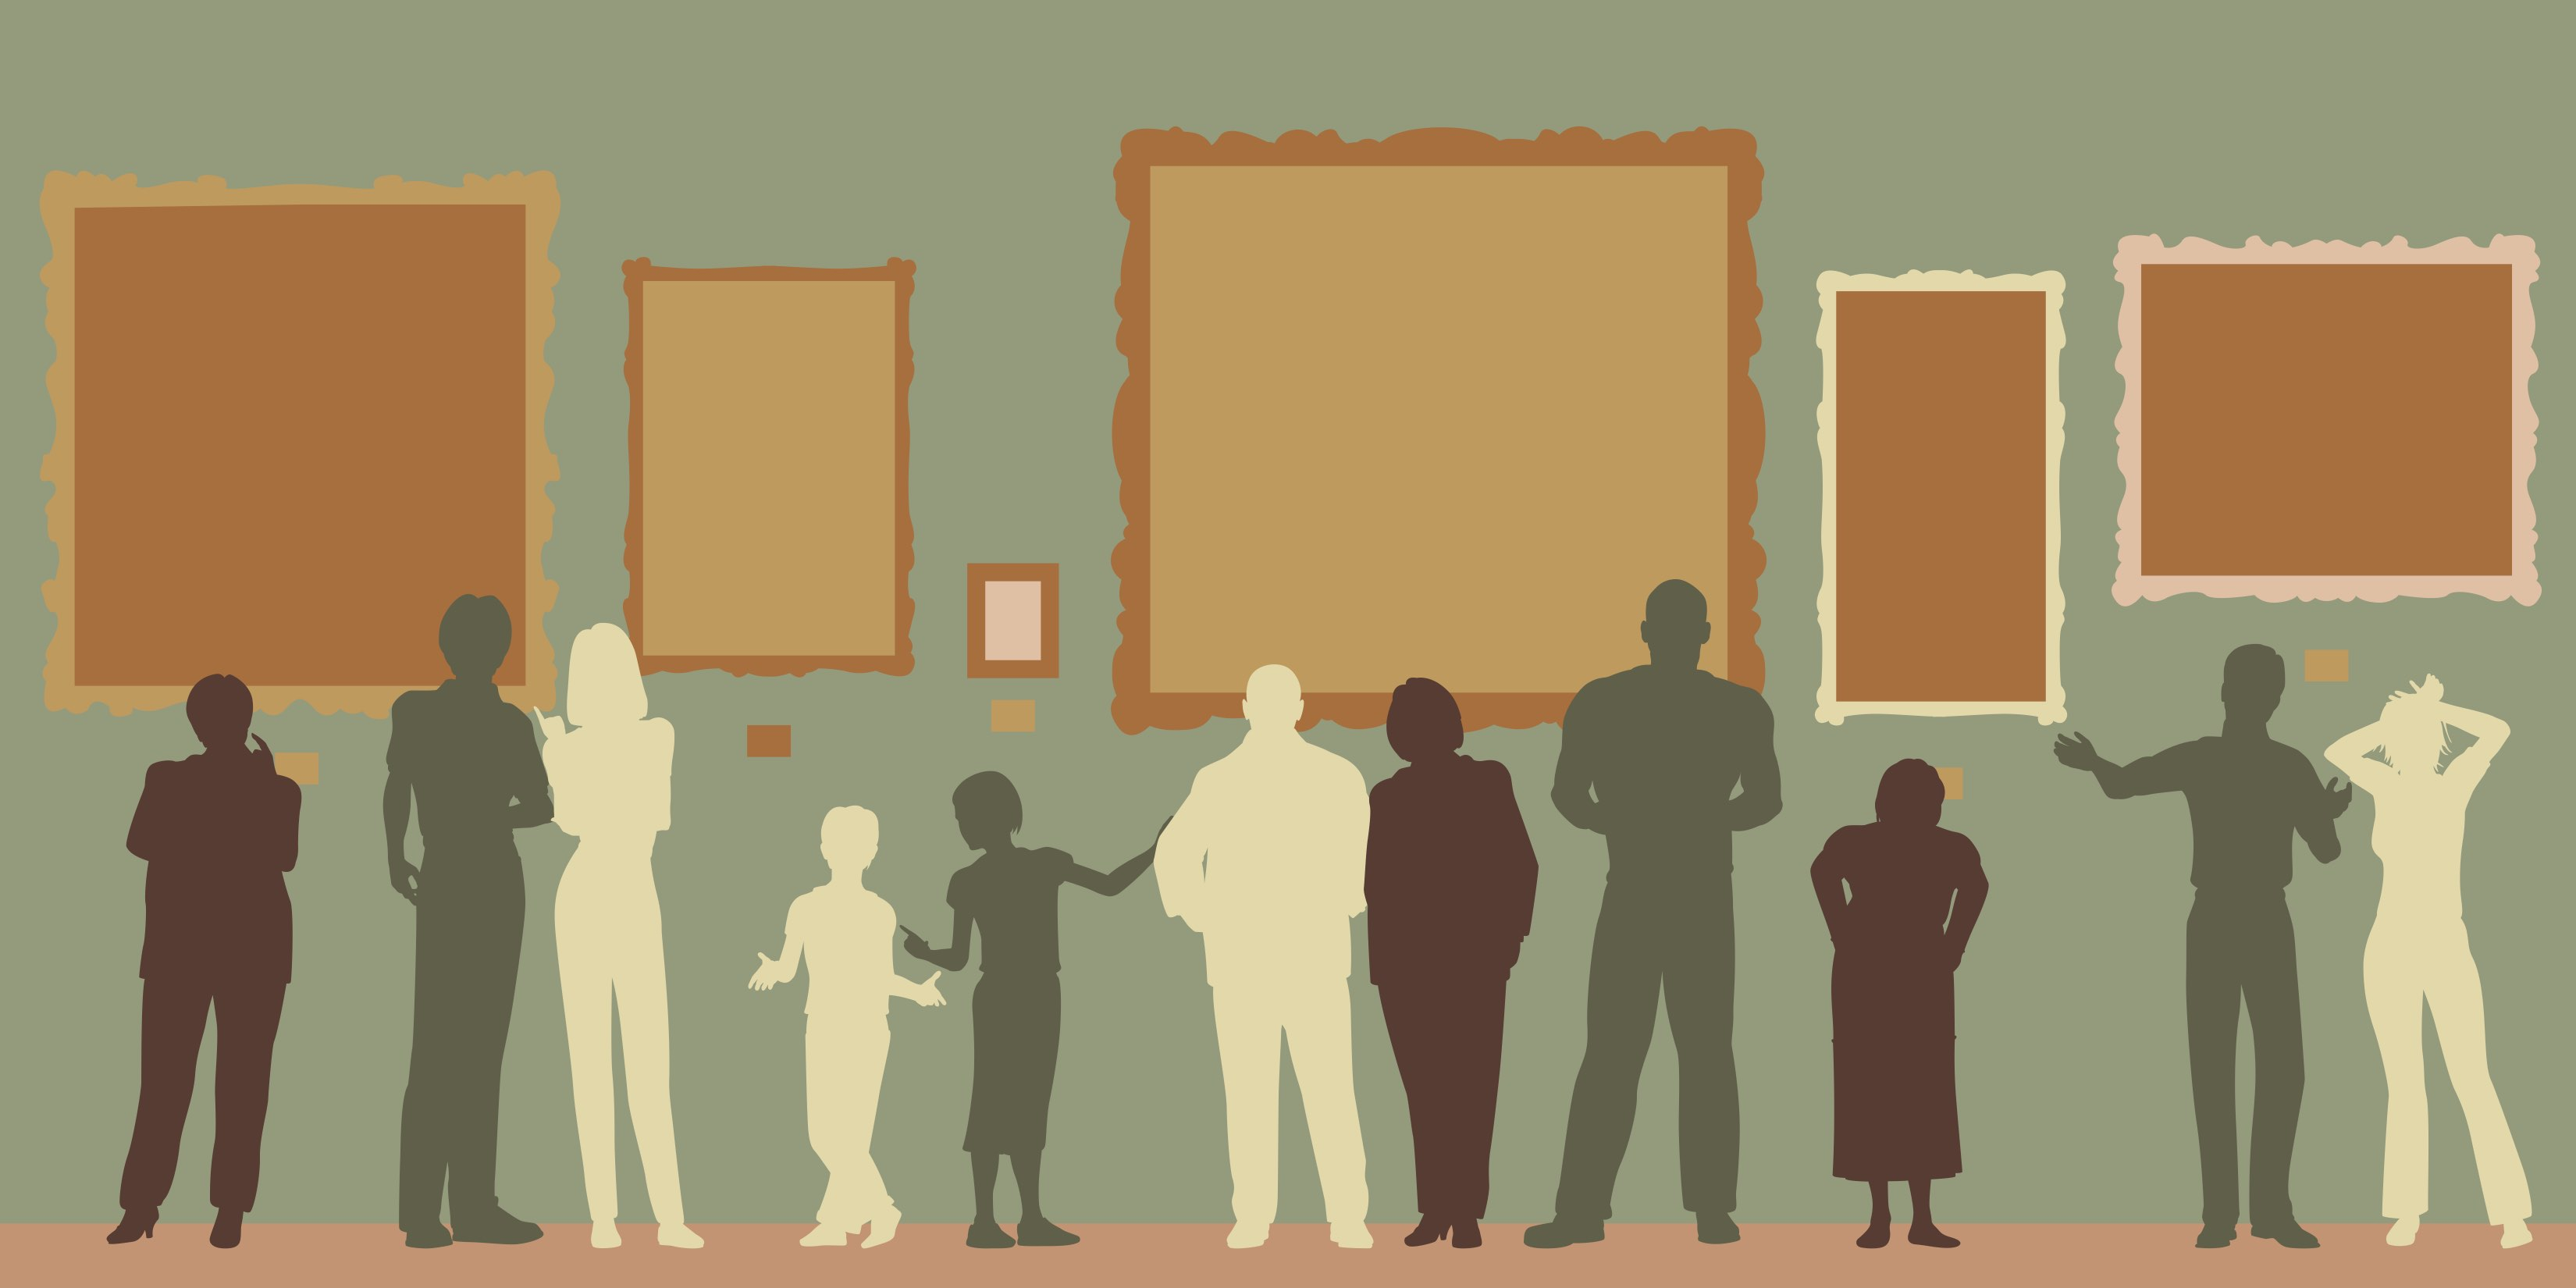 Where do agents look for new clients? This illustration shows a varied crowd of silhouttes looking at artwork in a museum.